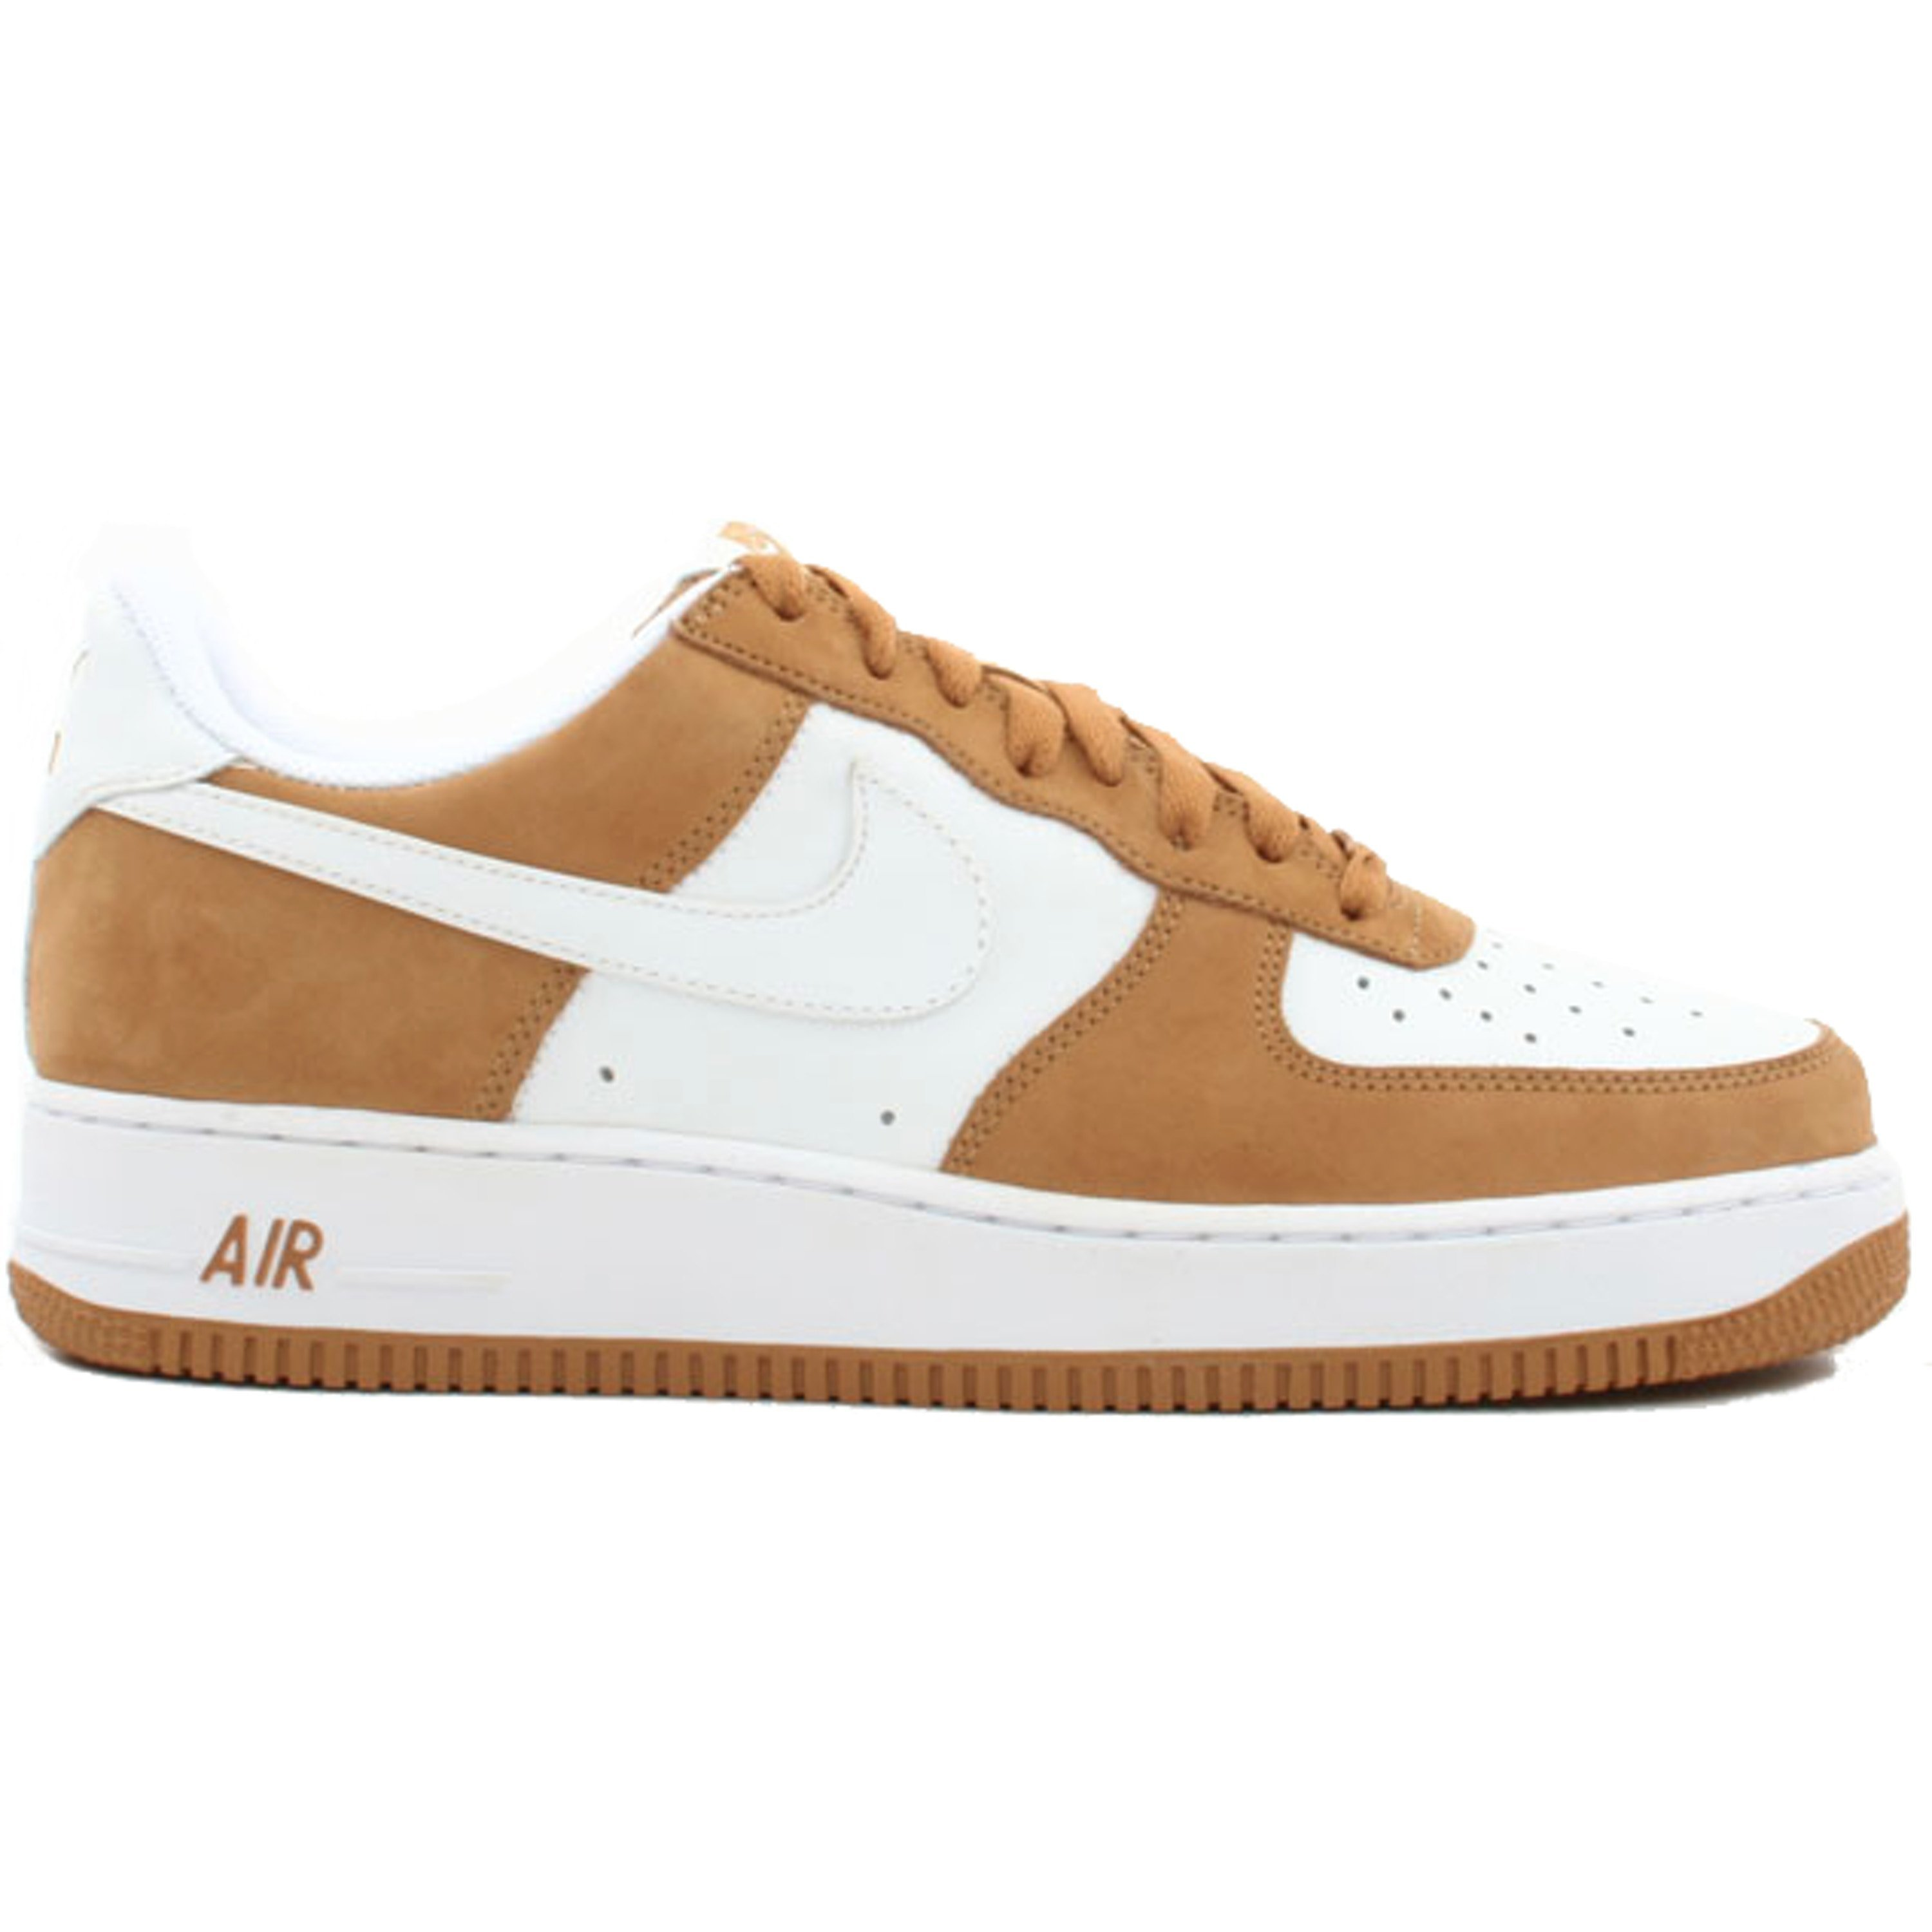 Nike Air Force 1 Low Barcode Wheat (306353-911)